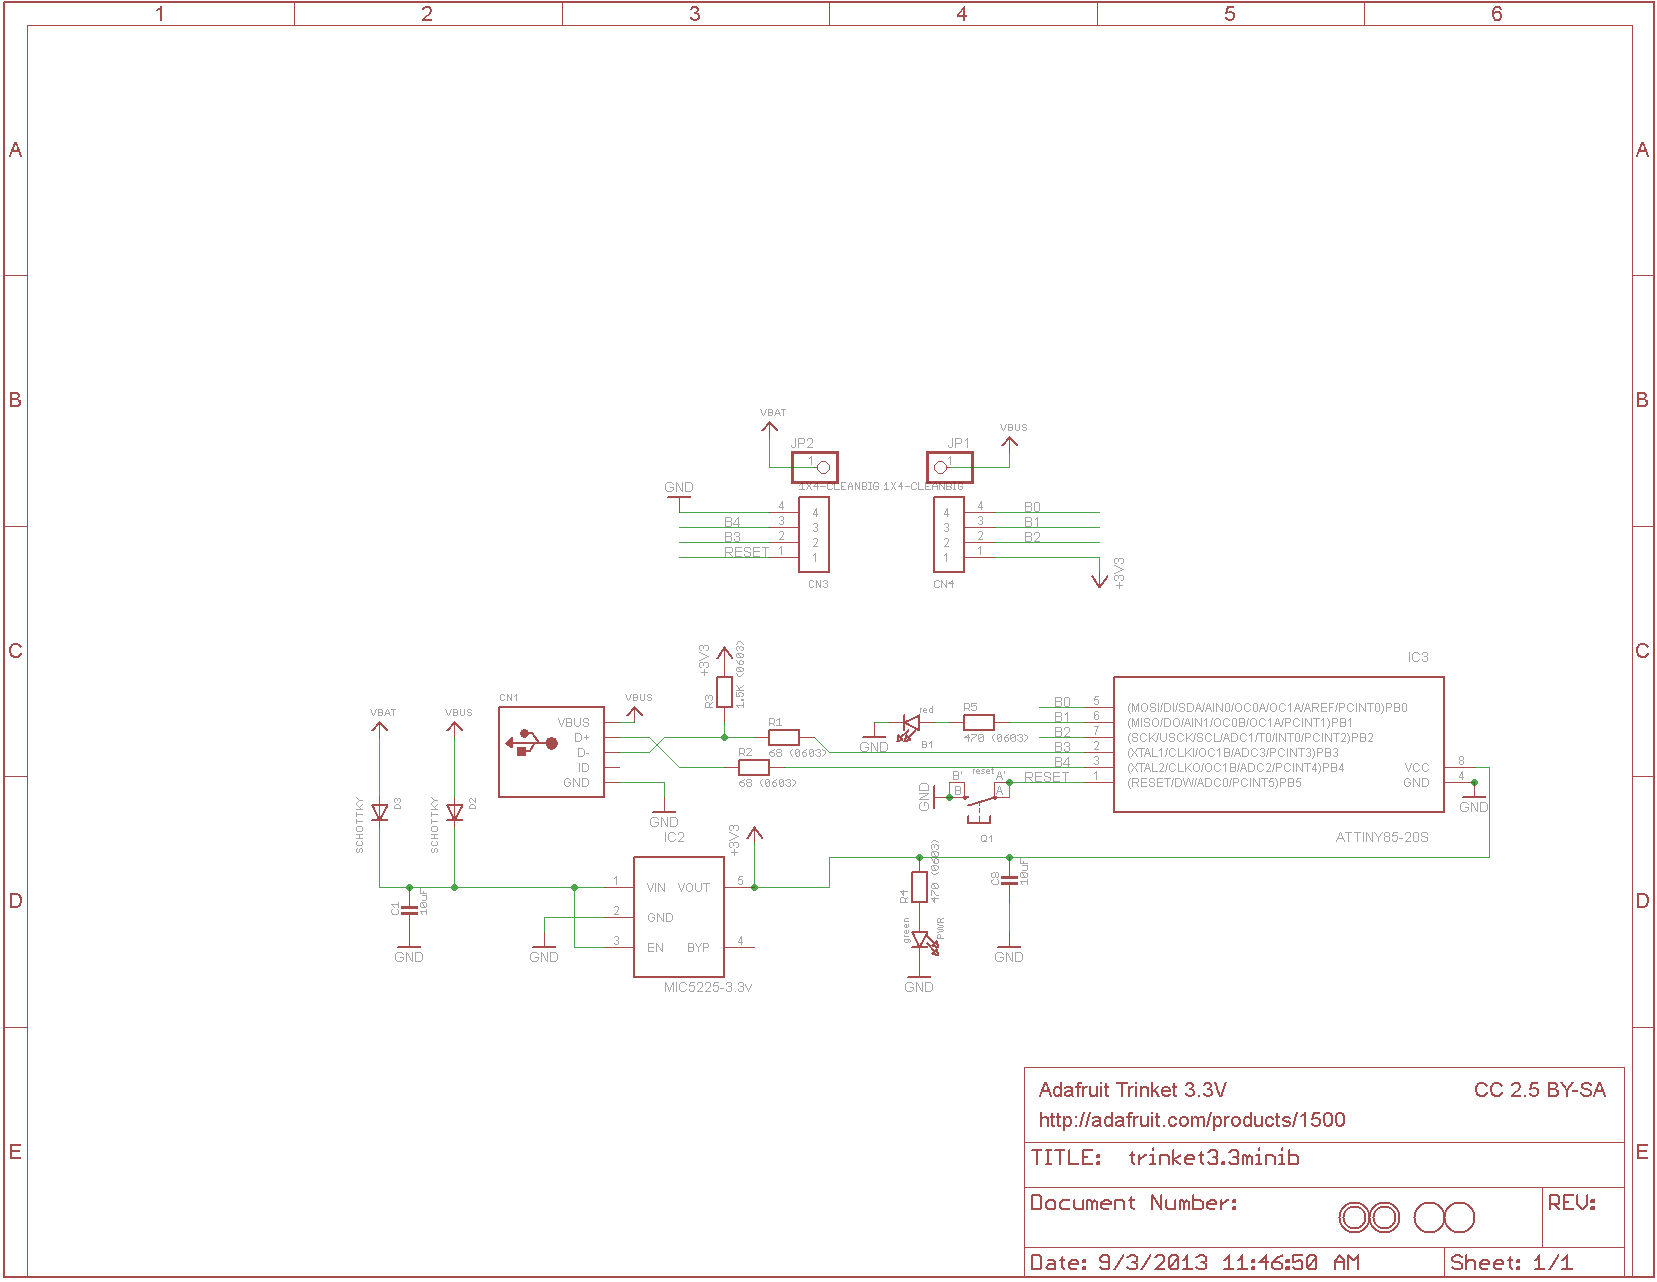 Hackadays Soup Ceiling Fans Wiring Diagram Besides Arduino Rotary Encoder He Made This Change Based On His Experience With V Usb And The Attiny85 Has A Lot More Information Build Forum